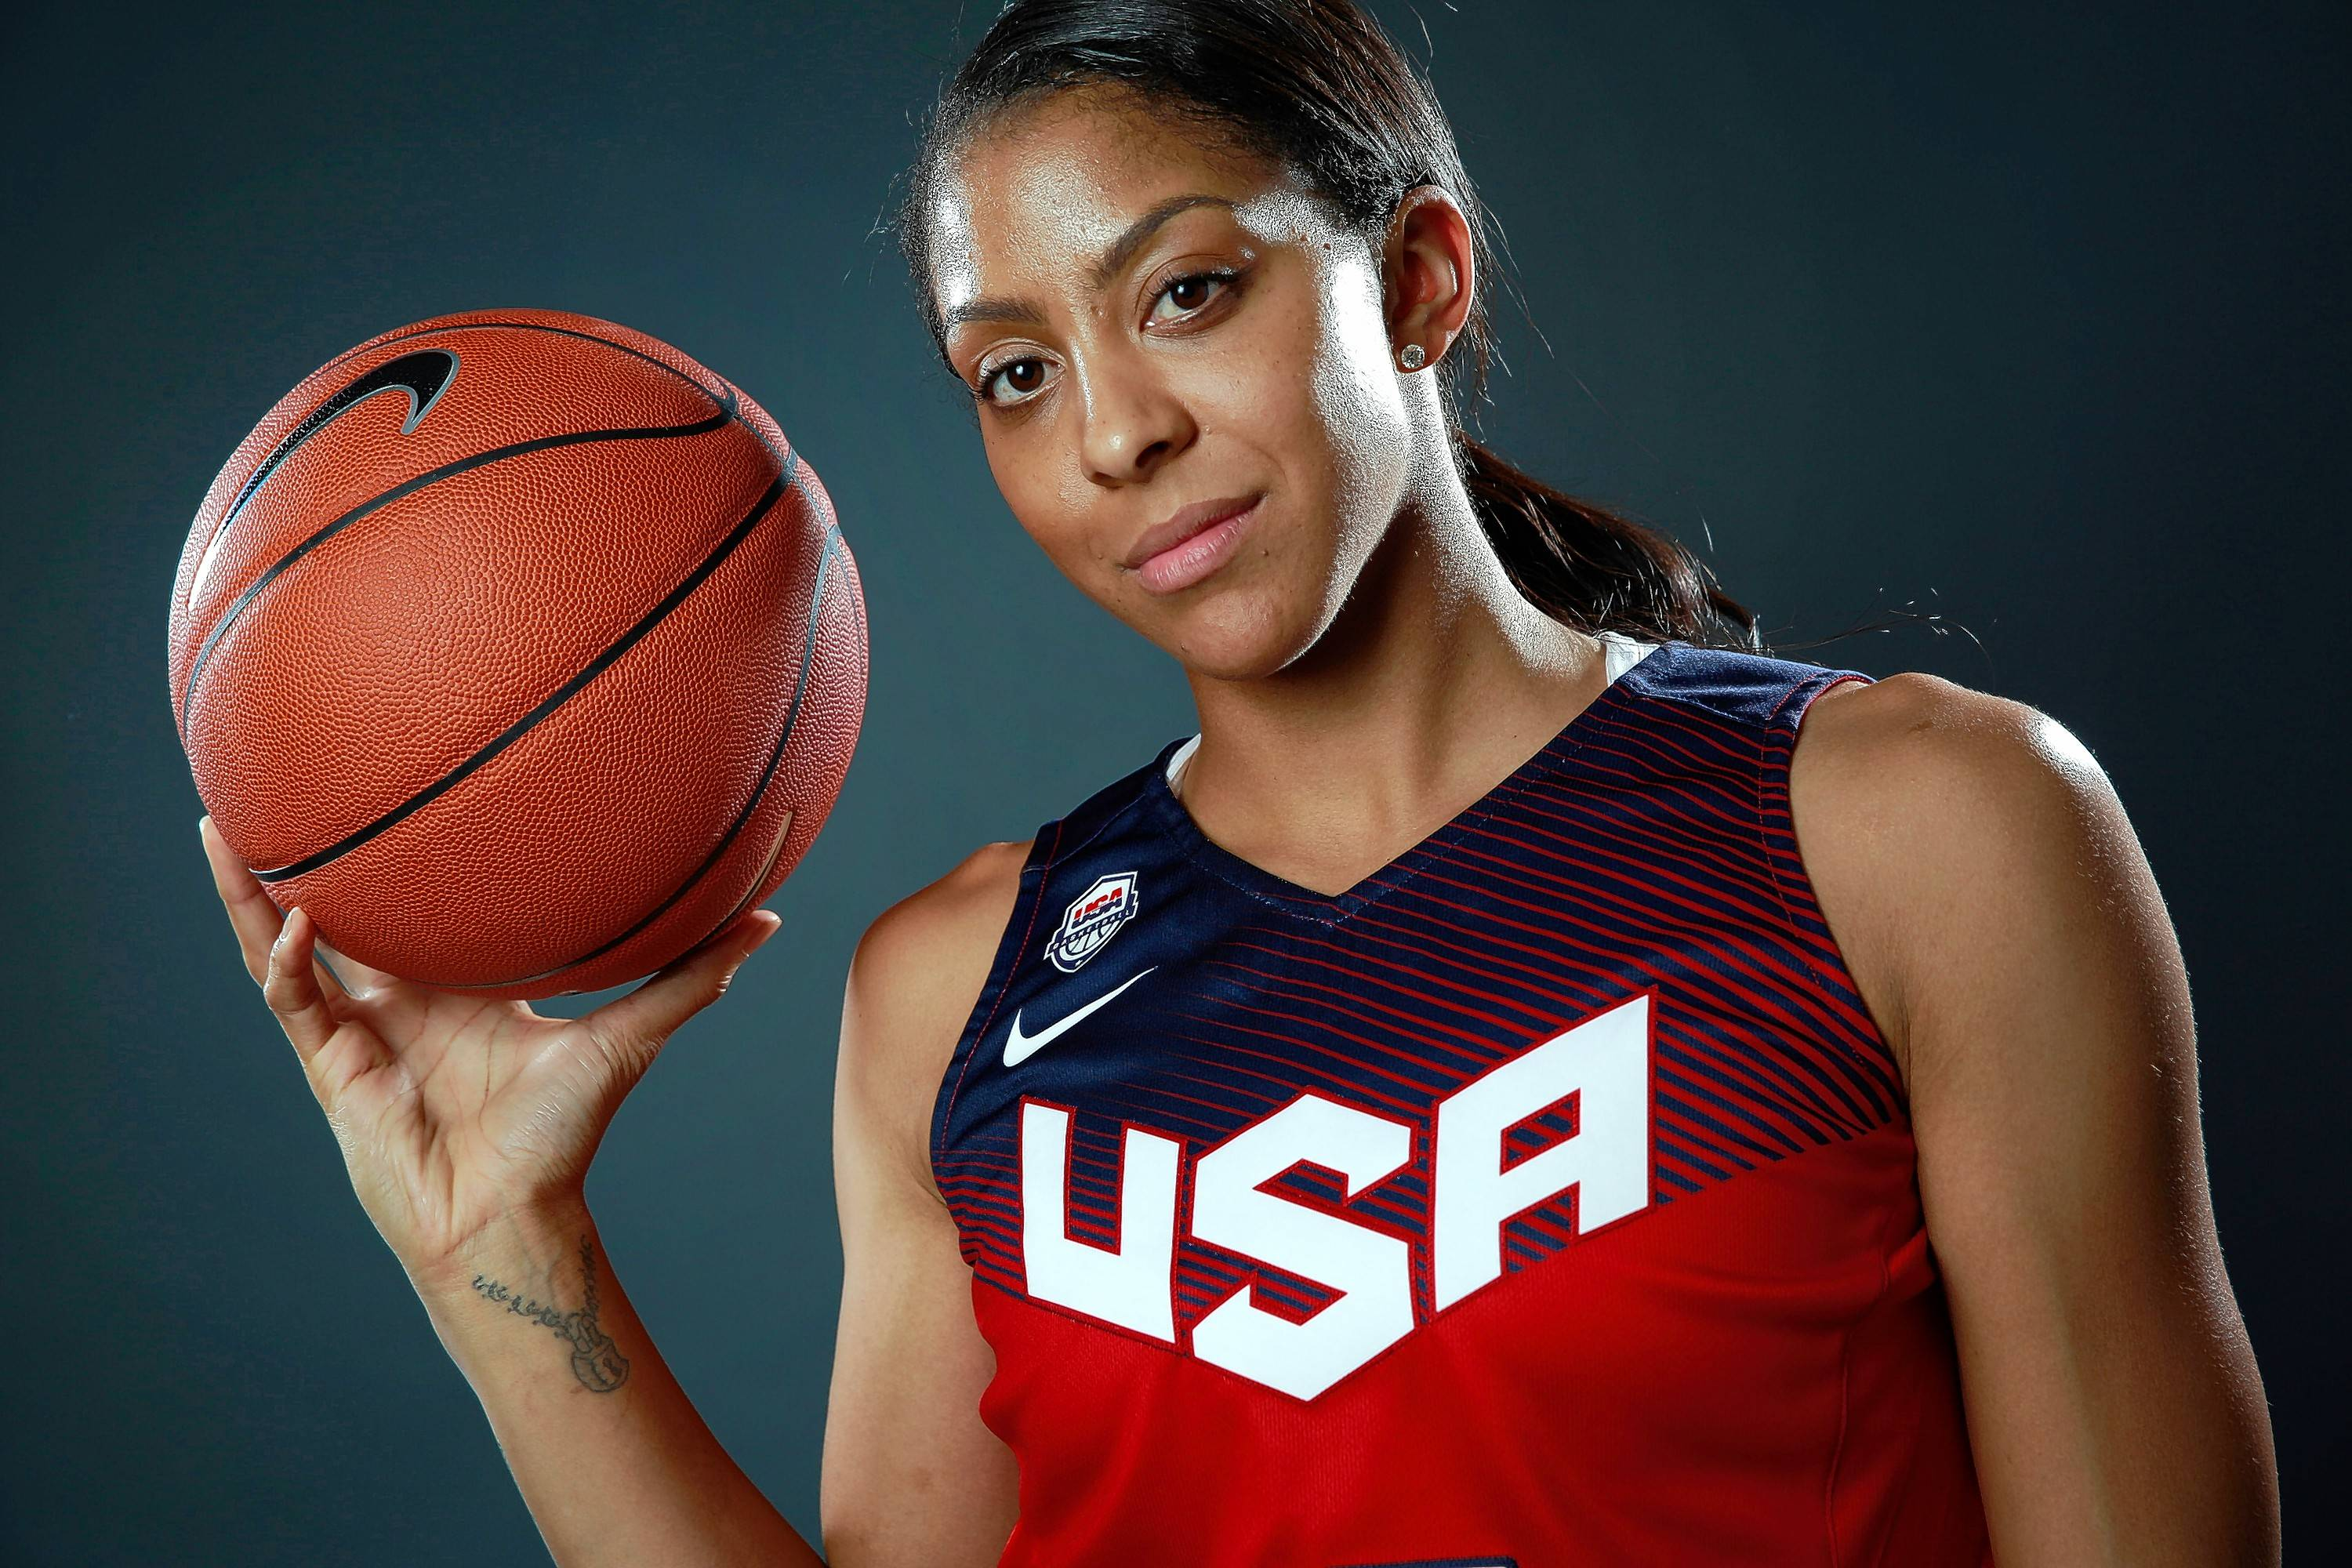 Naperville native and WNBA star Candace Parker was shocked and disappointed when she learned that she will not be on the U.S. women's basketball Olympic roster. The 30-year-old forward helped Team USA win the gold medal in the past two Olympics.